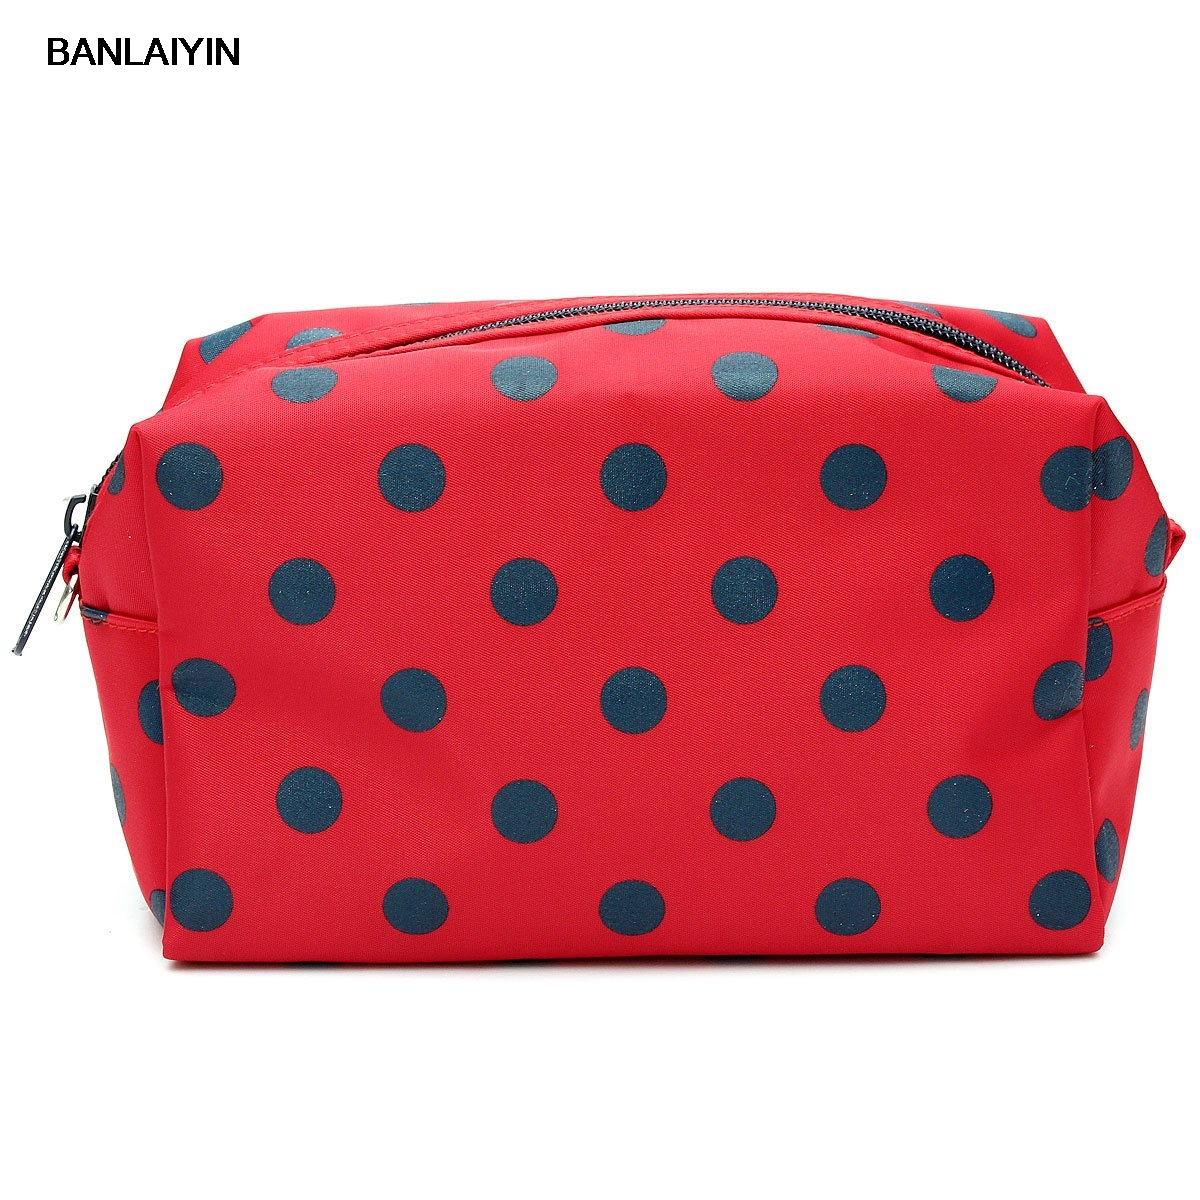 WholeTide 10* Cosmetic/Make-Up/Organizer Bag Pouch Zipper Hand Case Red цена и фото